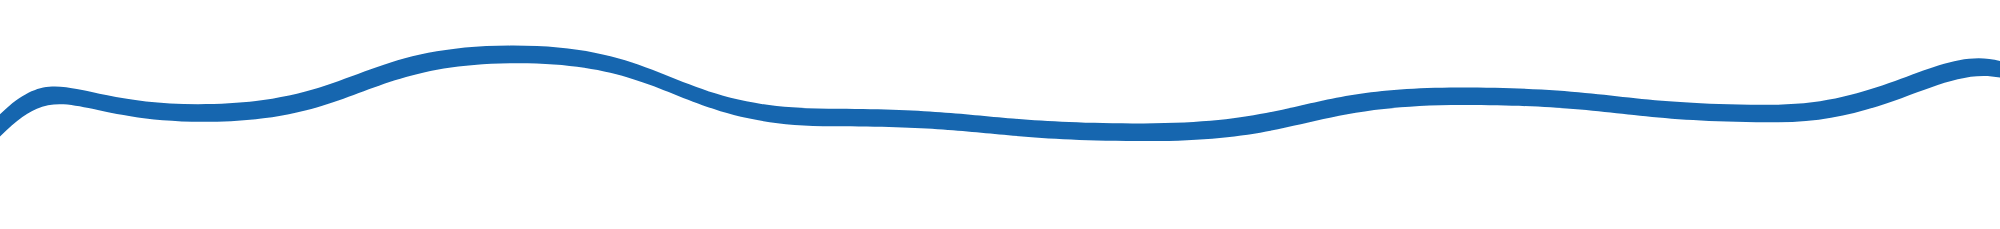 Blue_Line_Small.png